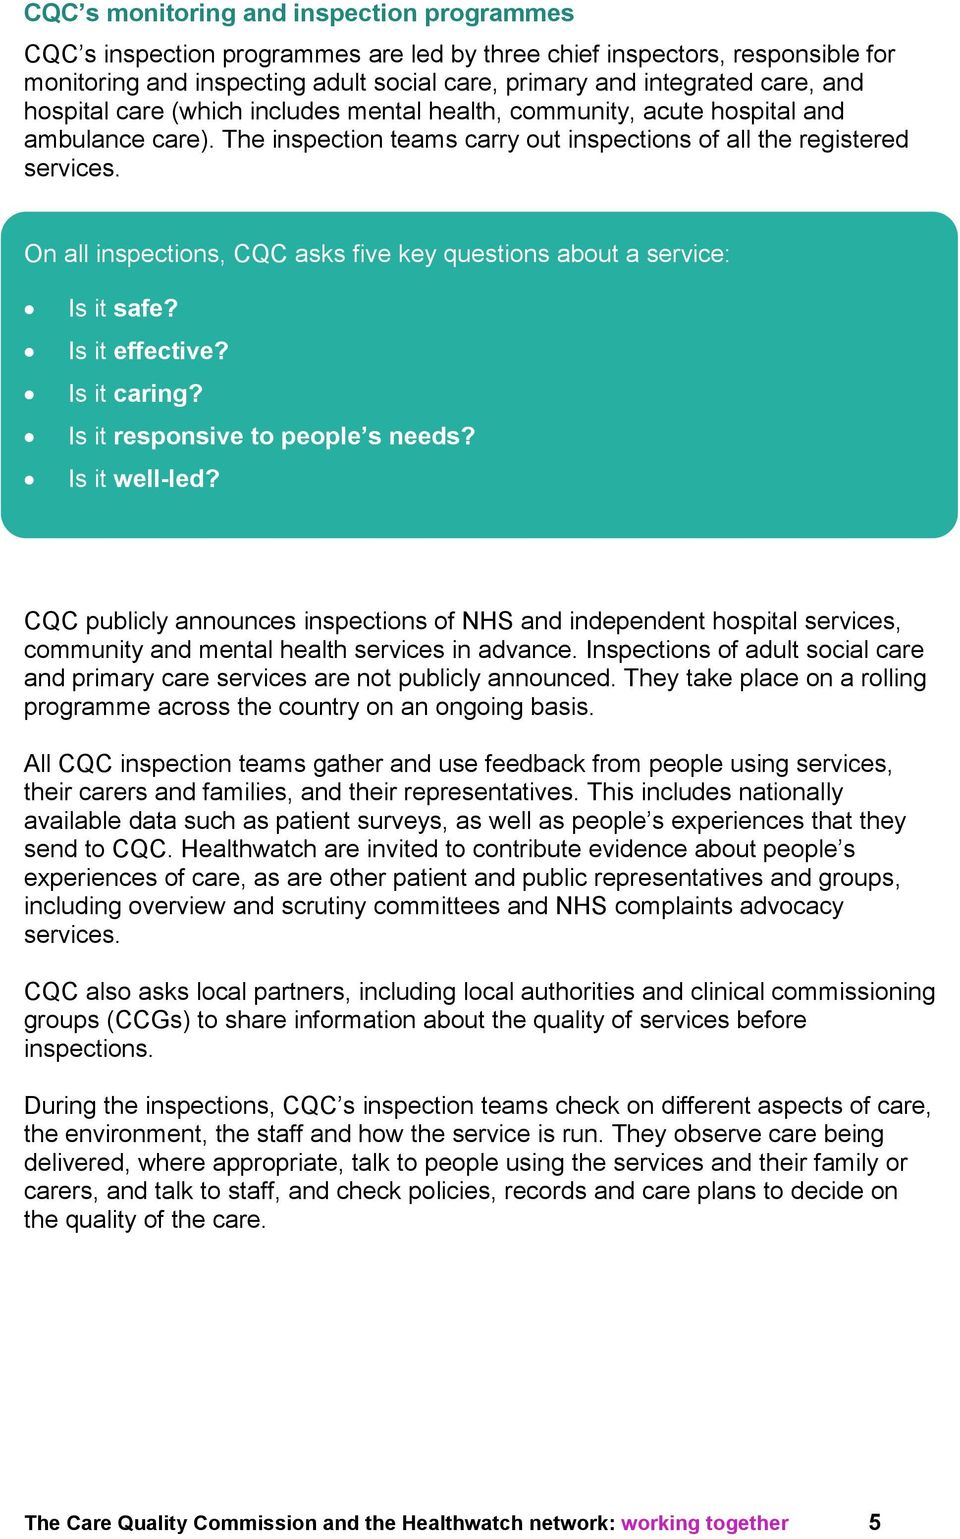 On all inspections, CQC asks five key questions about a service: Is it safe? Is it effective? Is it caring? Is it responsive to people s needs? Is it well-led?